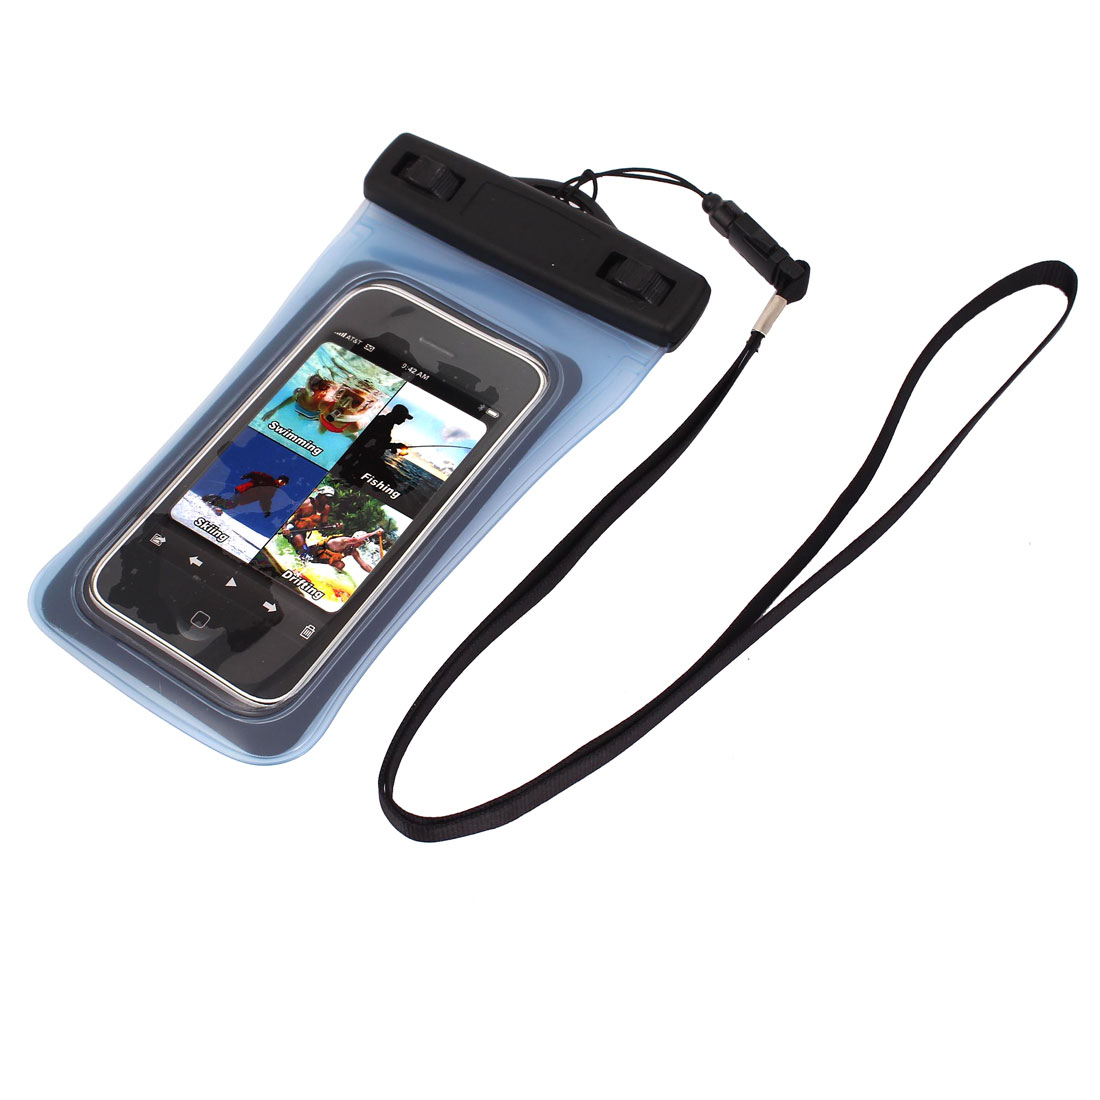 "Waterproof Dry Bag Protector Case Cover Pouch Clear Blue for 4"" Cell Phone"